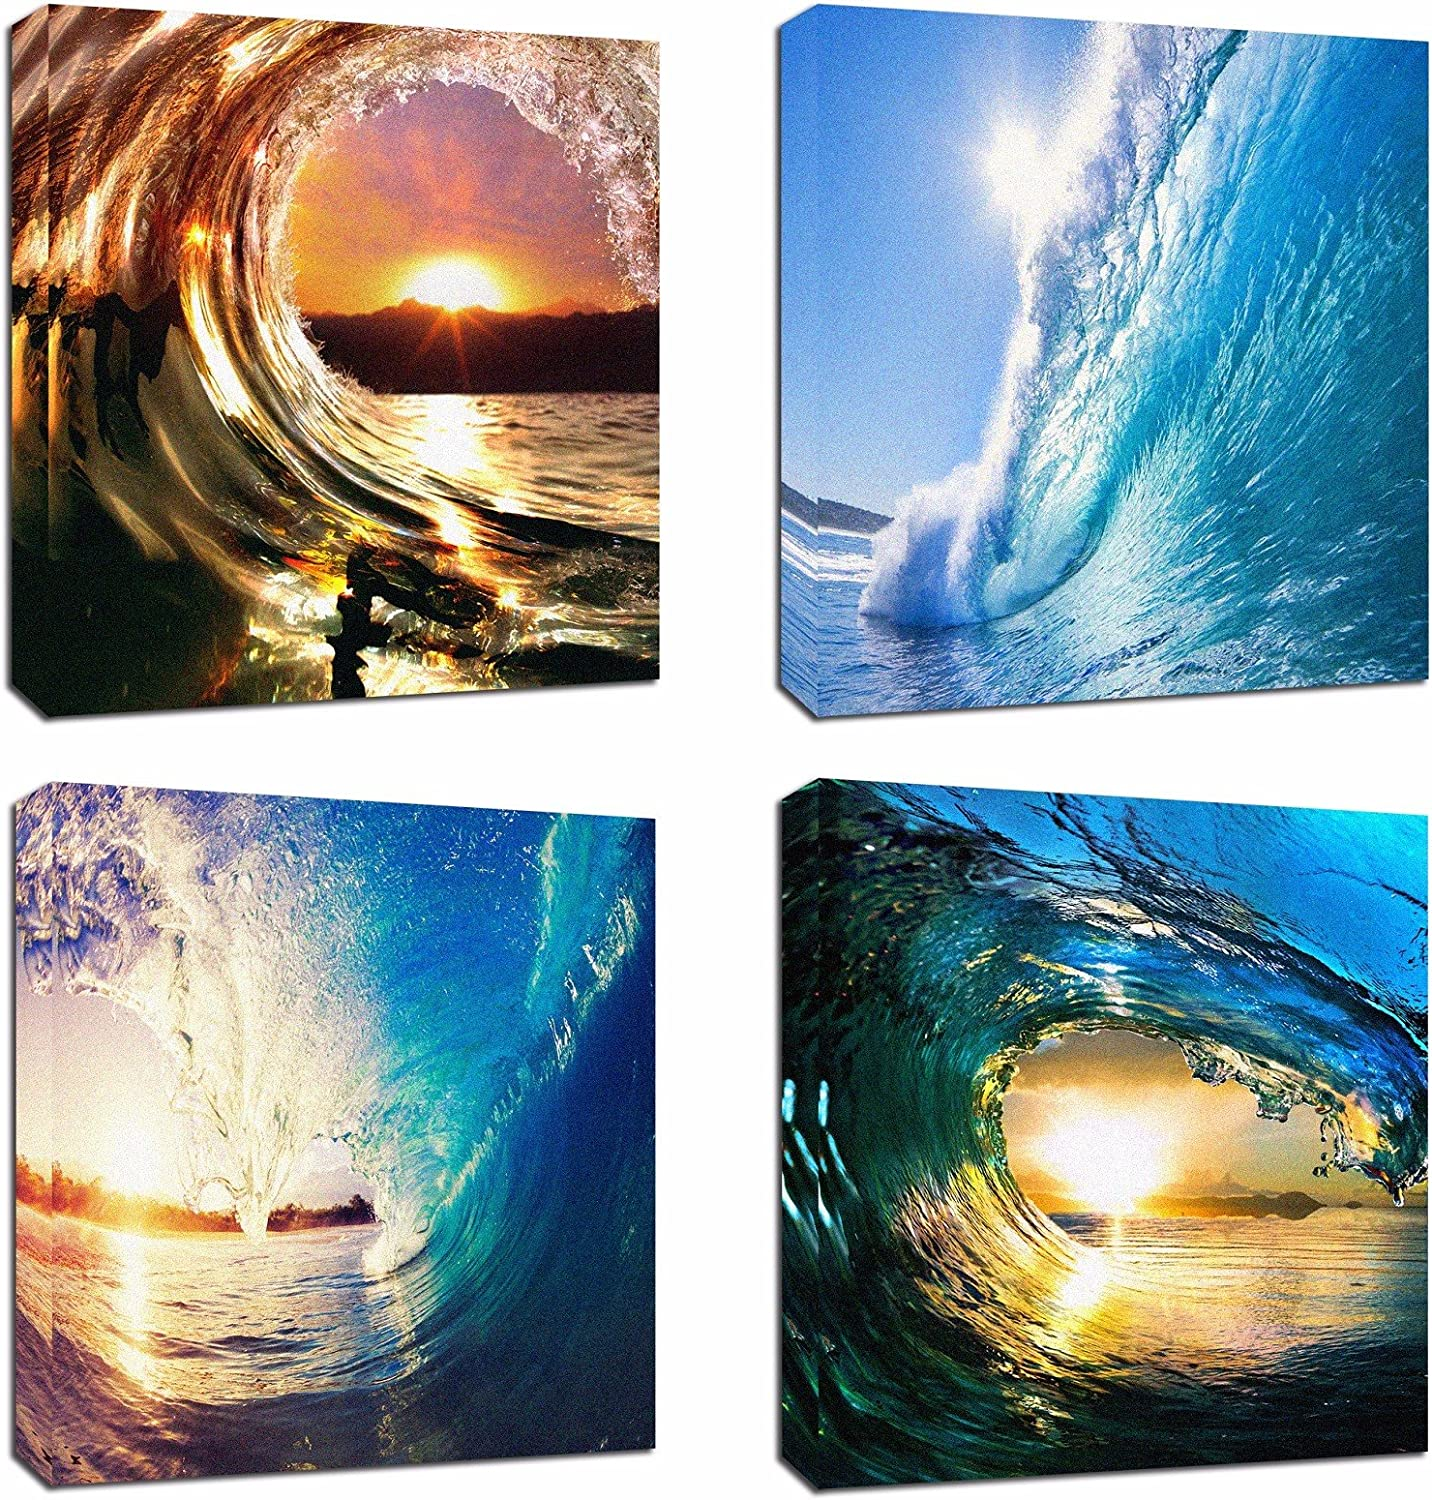 "4Pcs 12x12 Canvas Wood Stretched Blue Ocean Wave Surfing Sea Sunset Motivational Theme Pink Frame Landscape Abstract Modern Art For Home Room Office Wall Print Decor 12x12"" inch (30x30cm) (Canvas Not HD Ptints)"